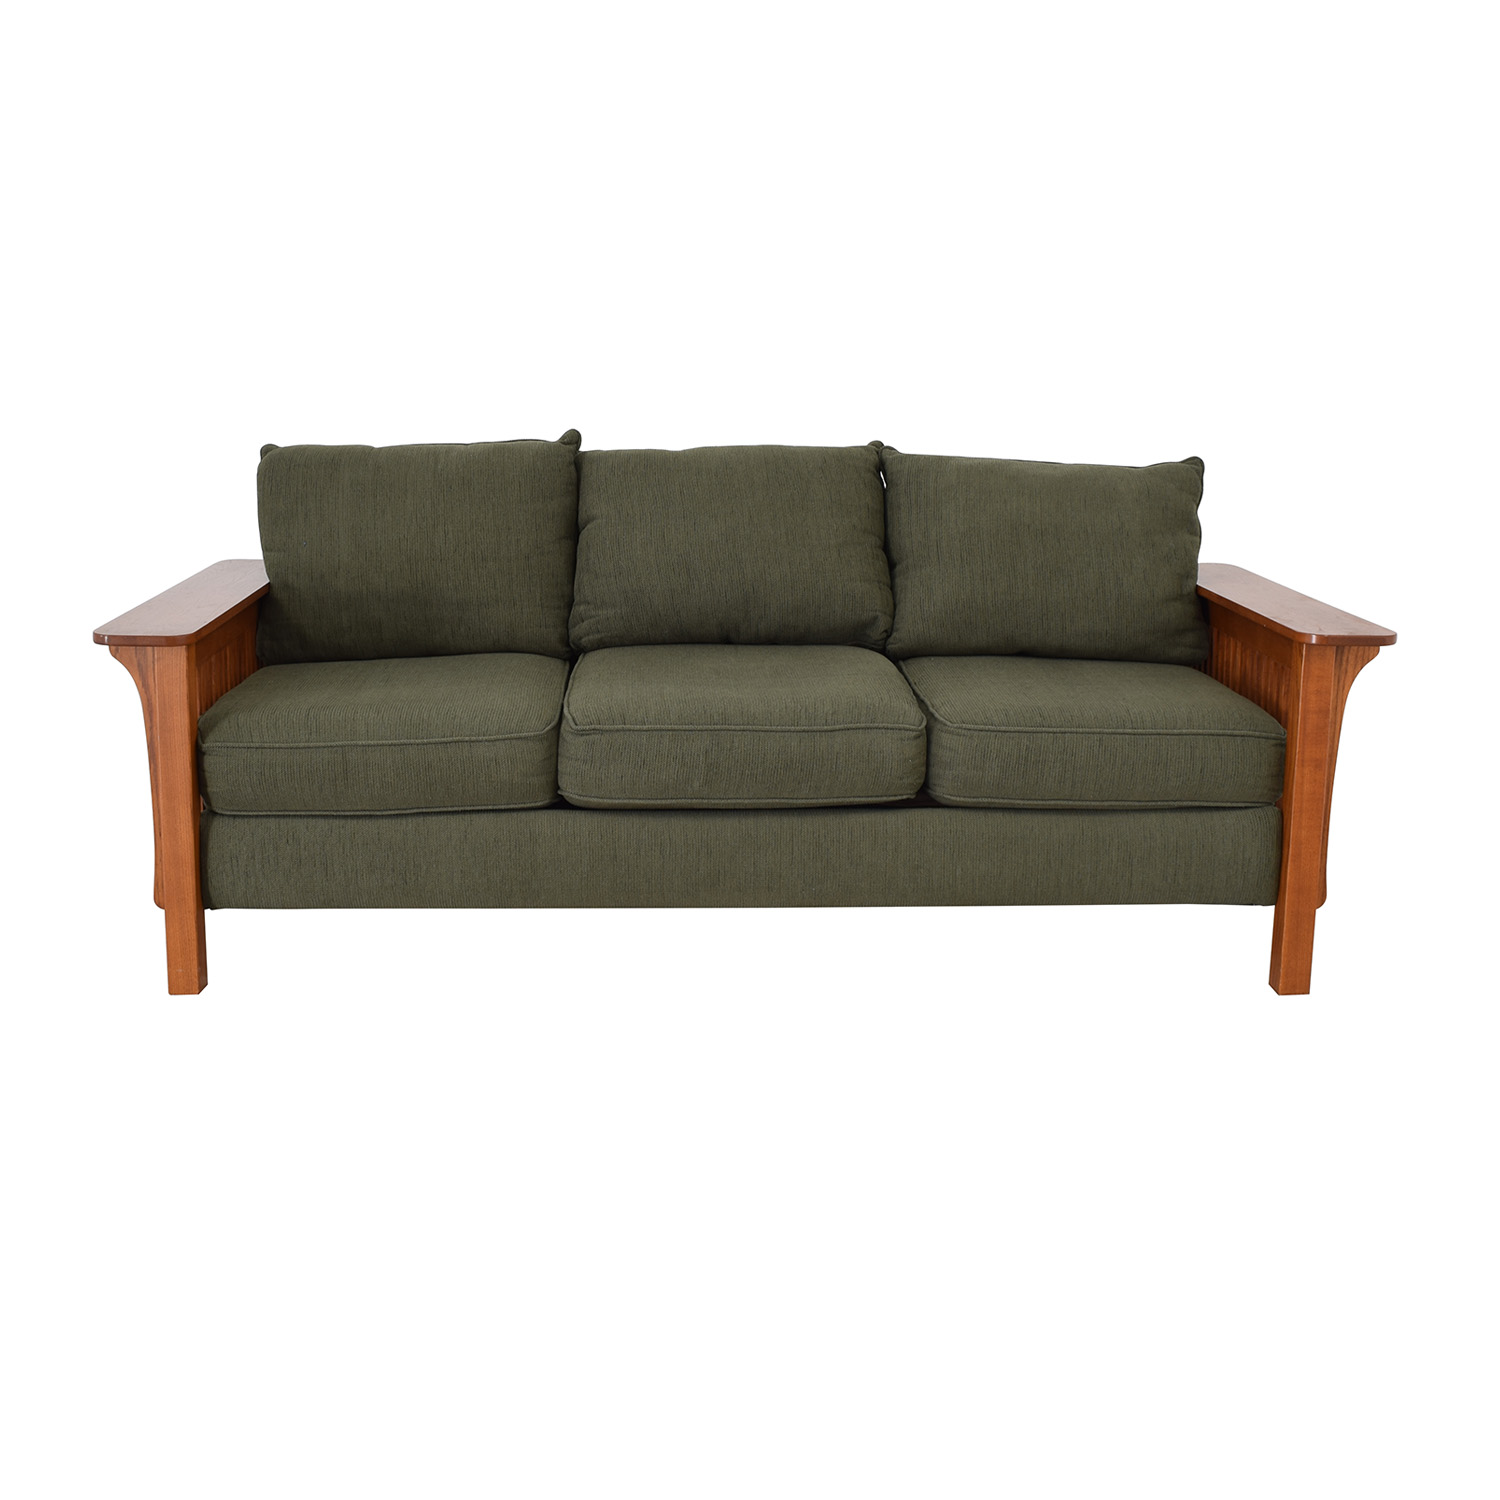 Mission Style Three Seat Couch dimensions